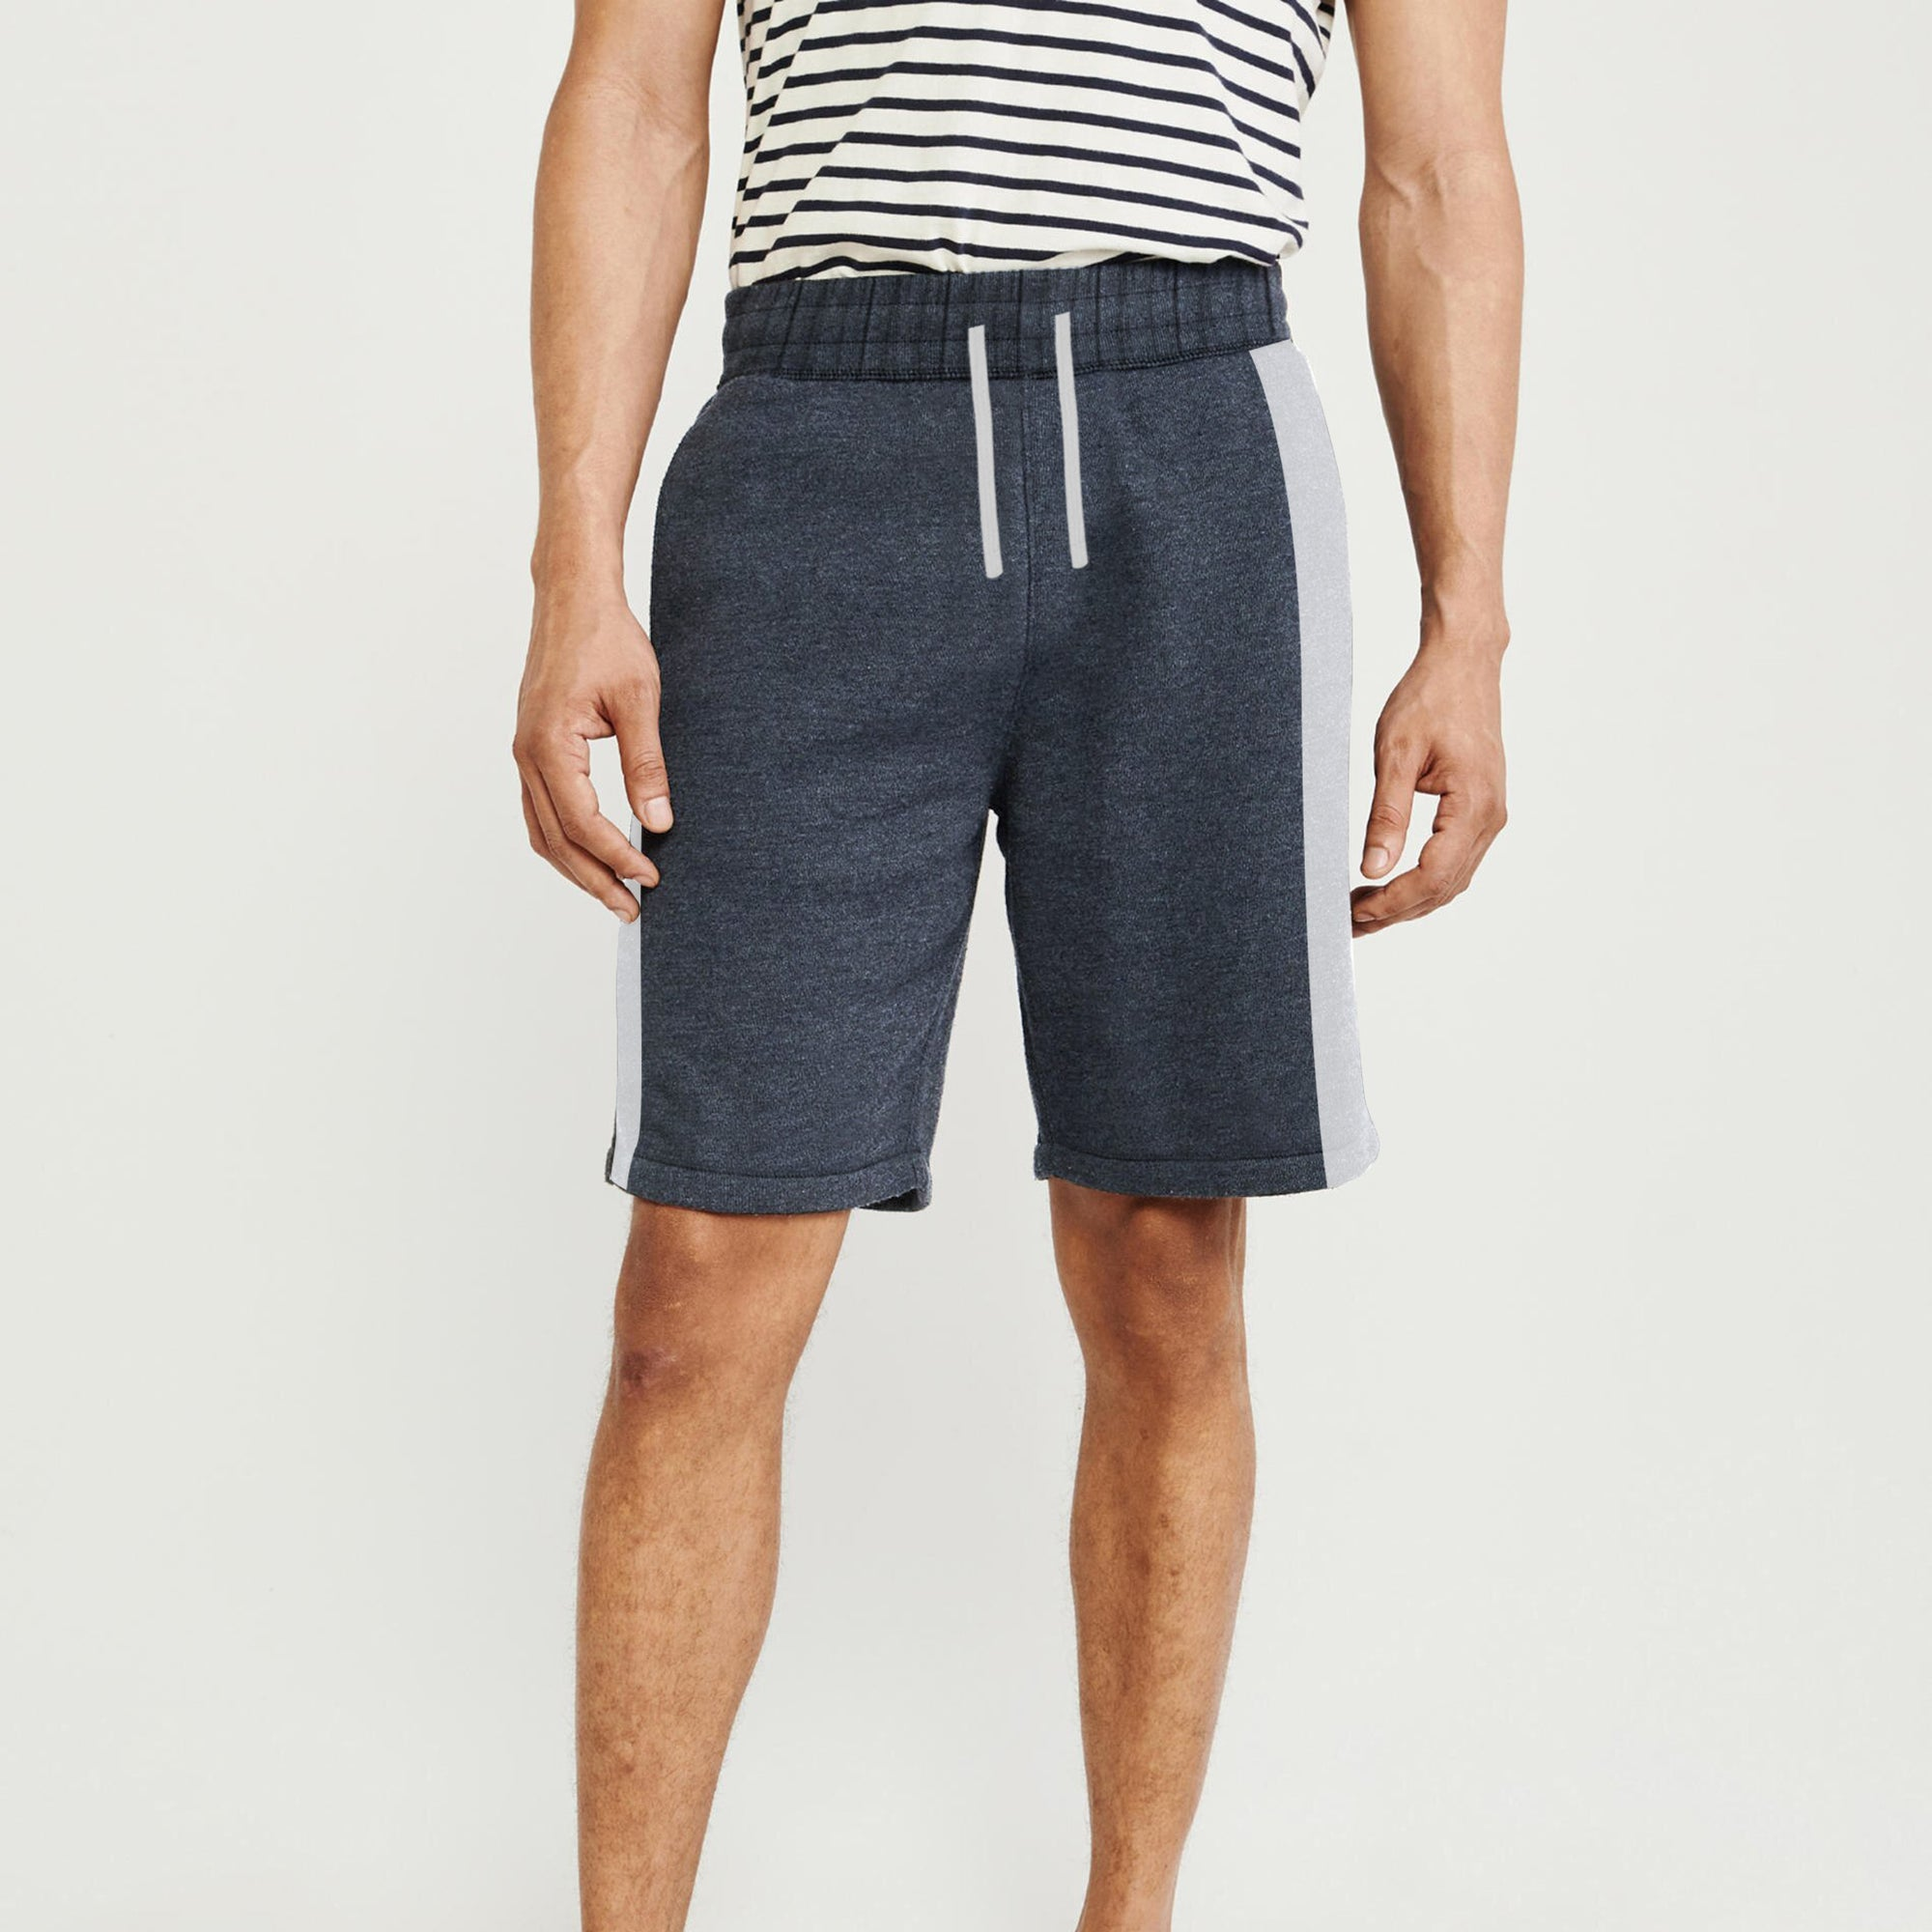 Next Summer Terry Jersey Short For Men-Dark Navy Melange & Grey Melange Stripe-BE8836